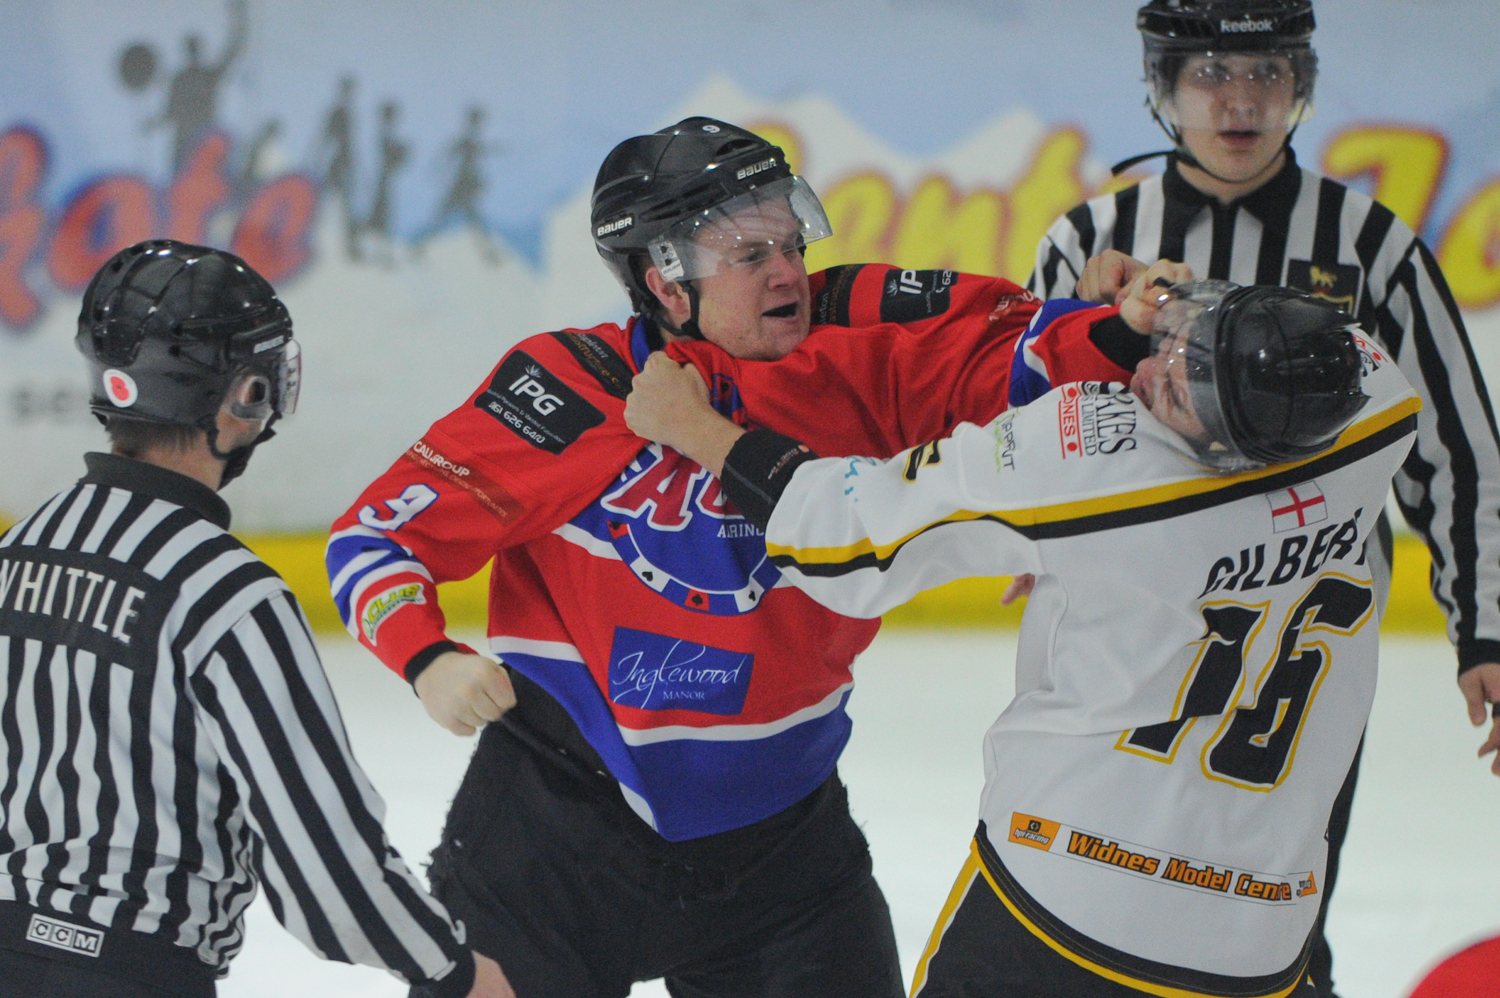 Wild Host Aces in North West Derby – Preview With Ollie Barron